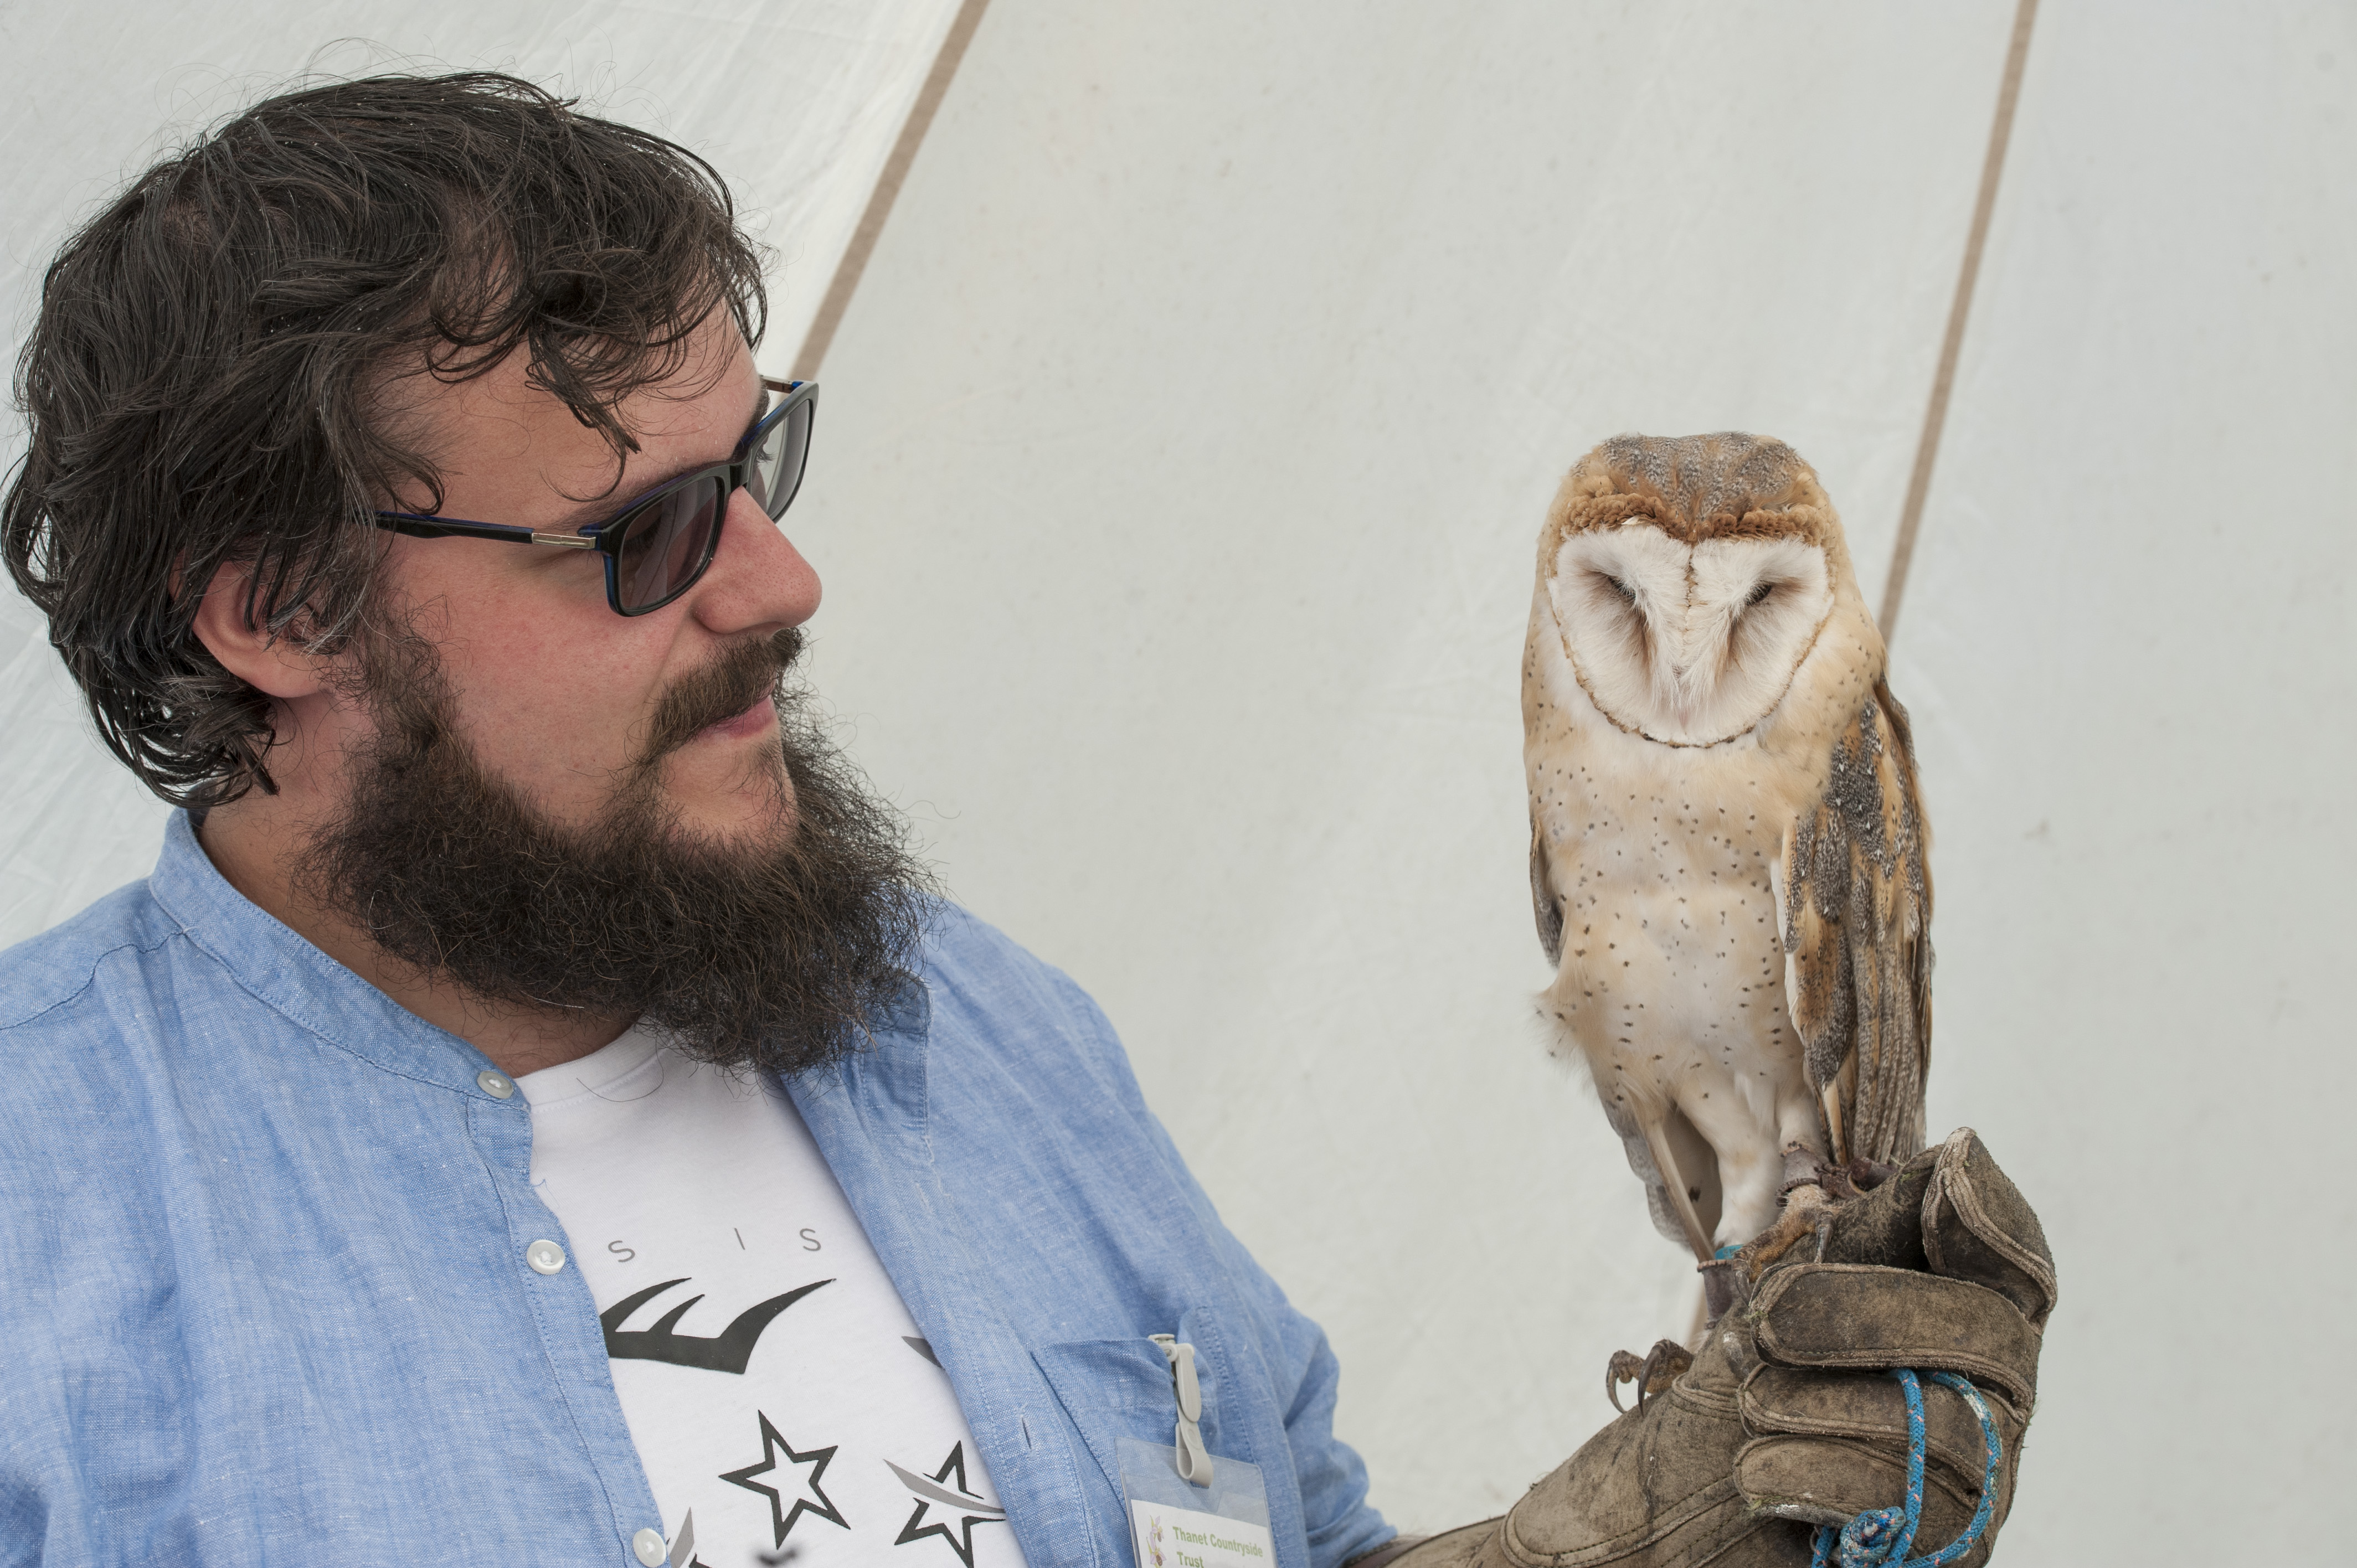 Handling an owl in Monkton Nature Reserve. Image by Chris Constantine.